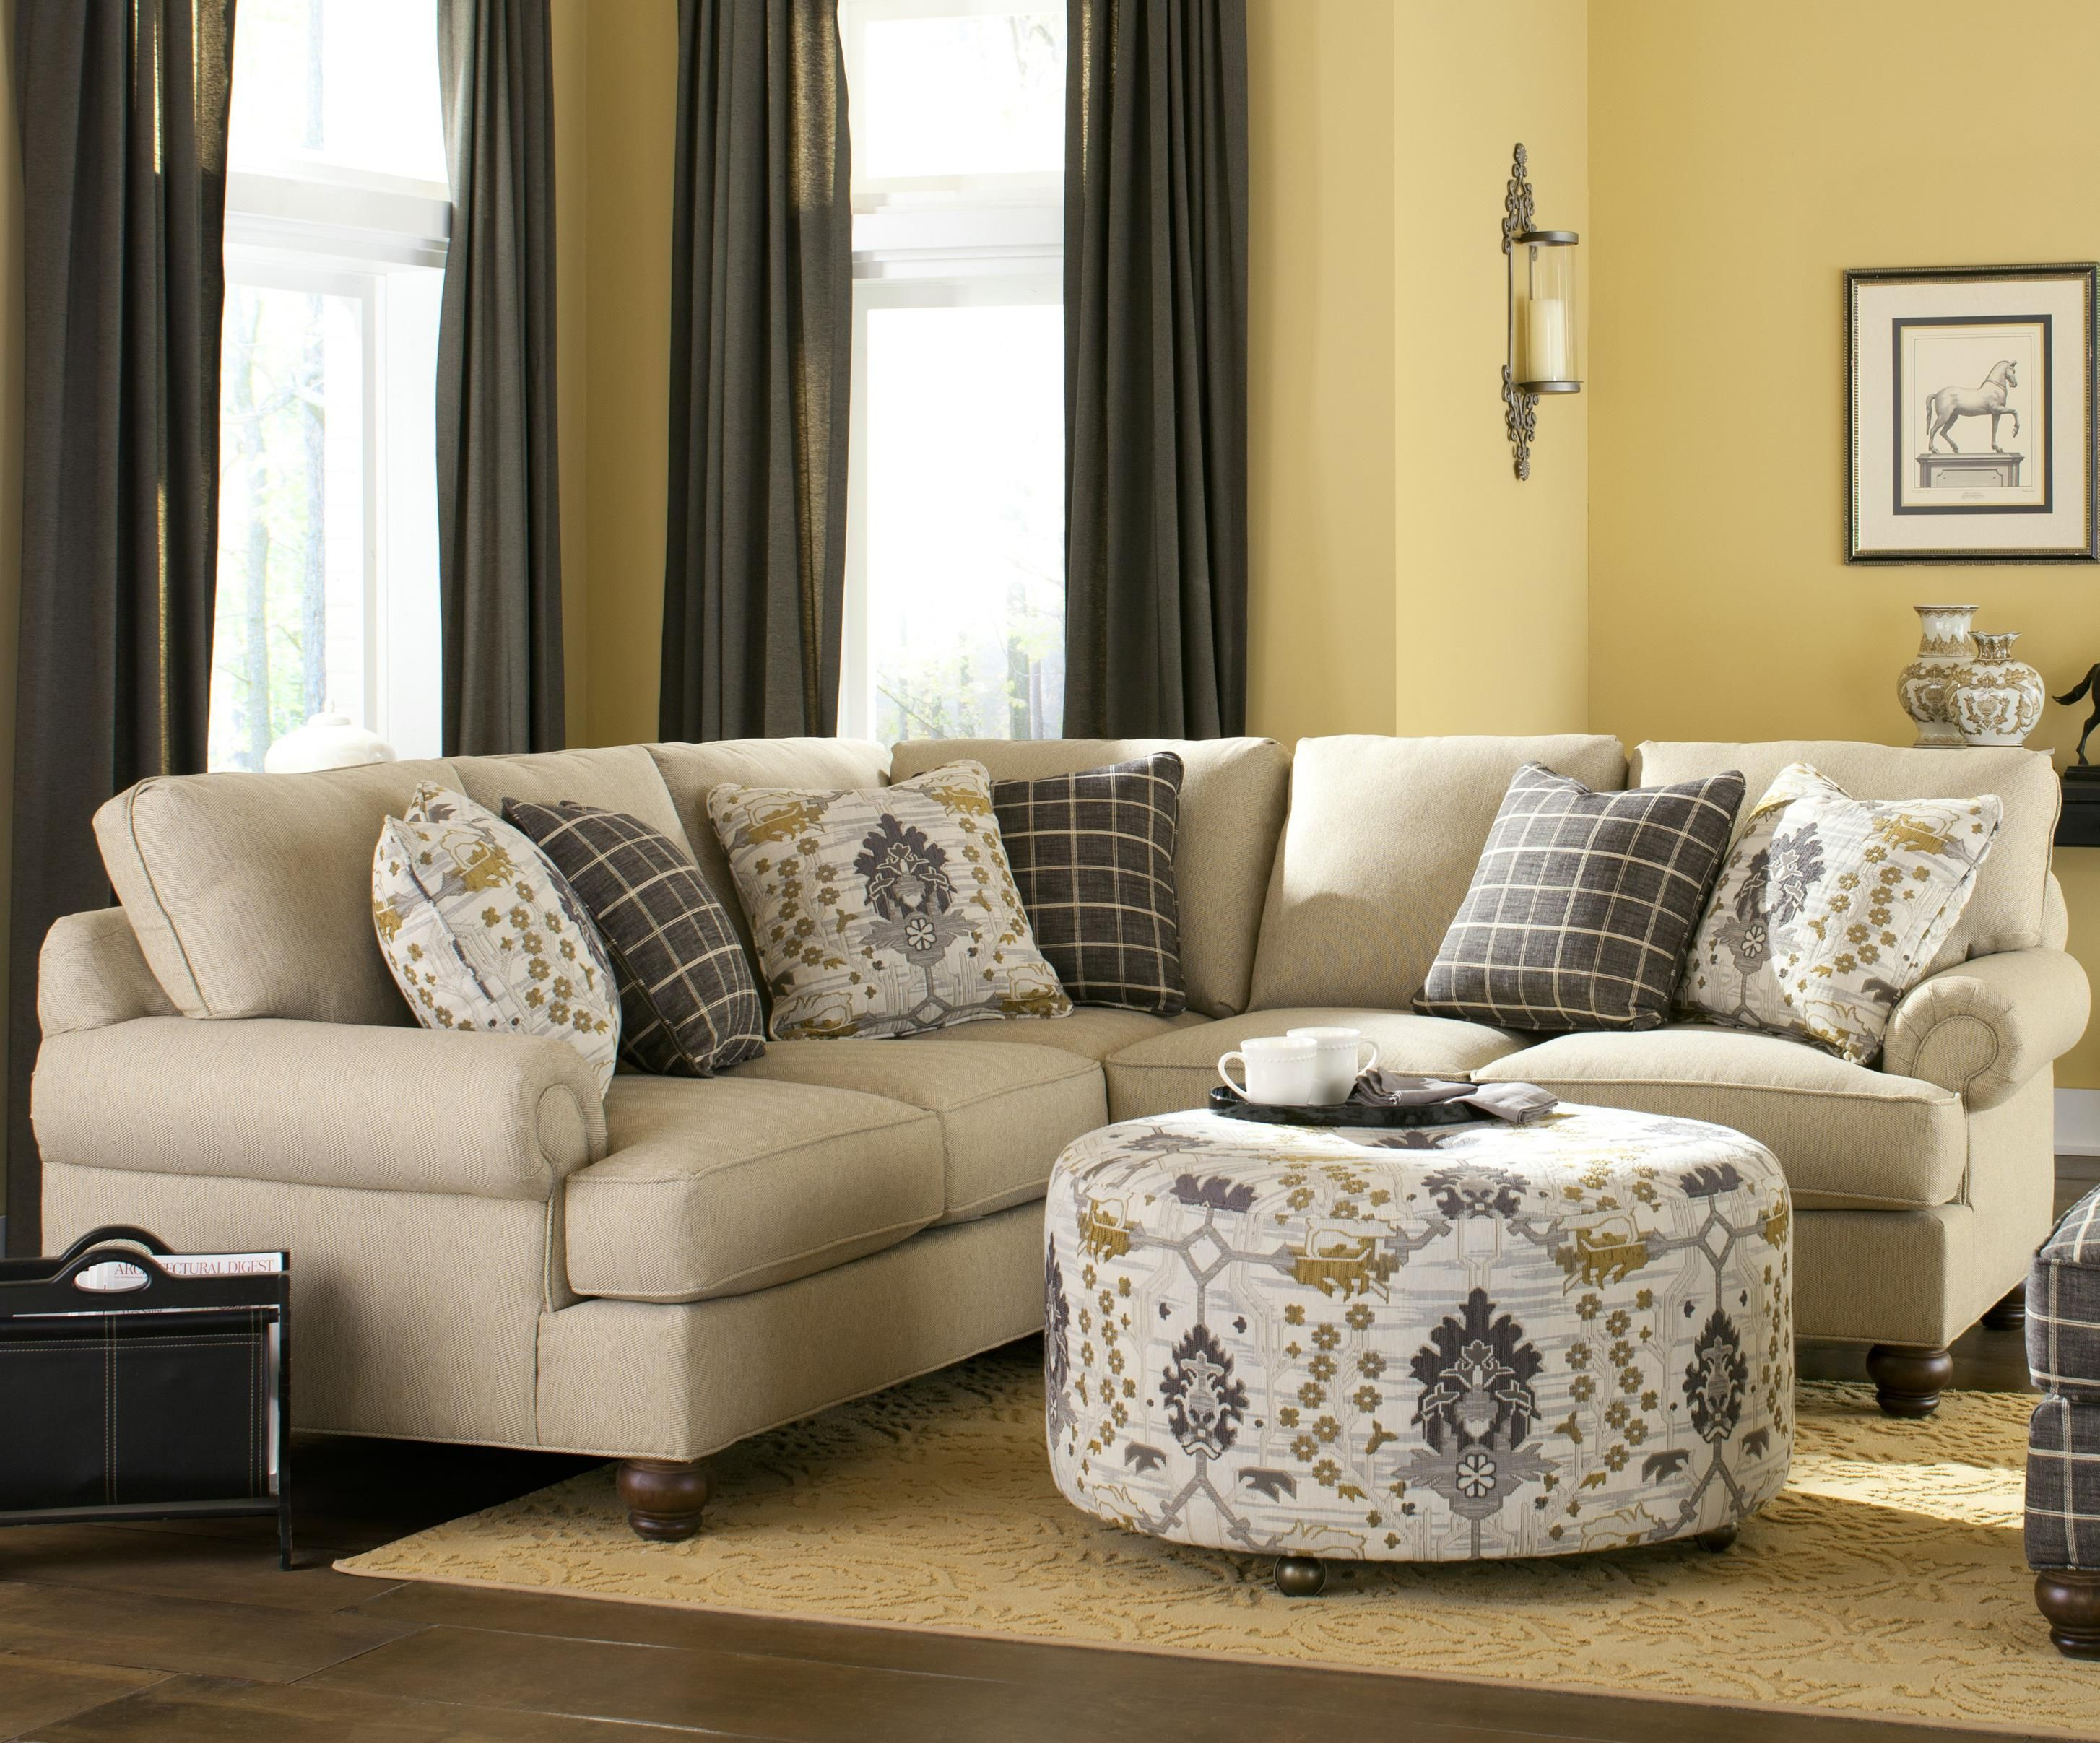 C9 Custom Collection b Custom b 2 Pc Sectional Sofa by